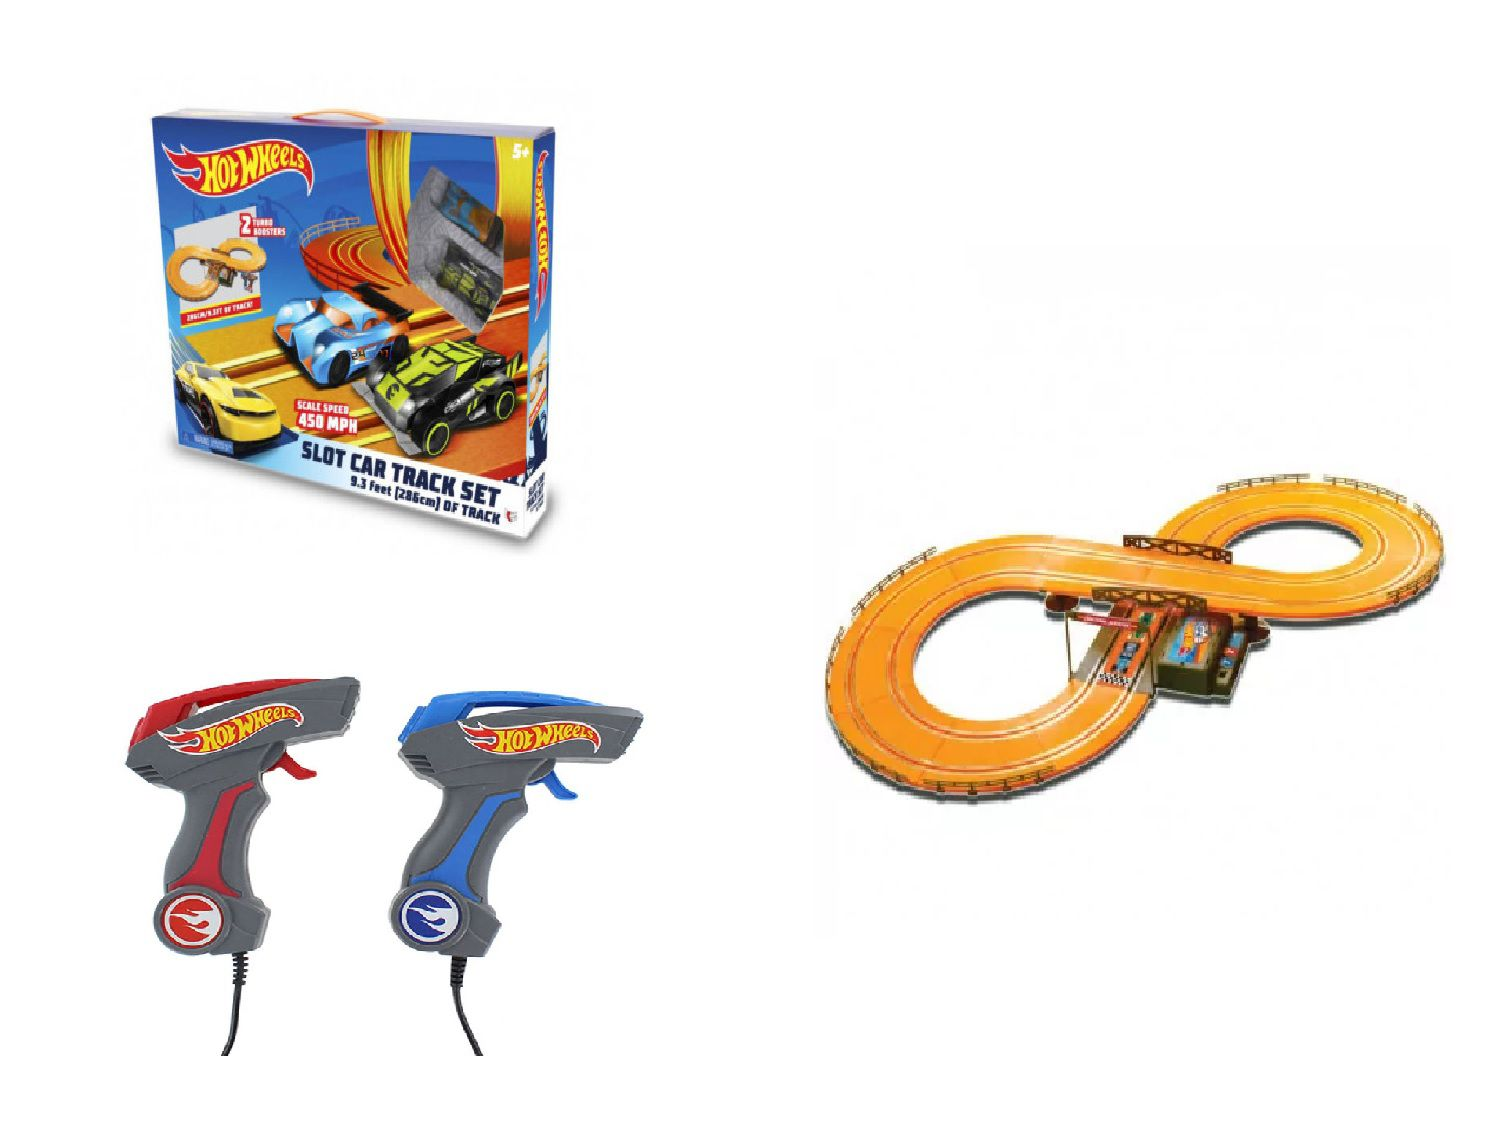 Pista Hot Wheels Track Set 286 Cm Basic BR081 Multilaser